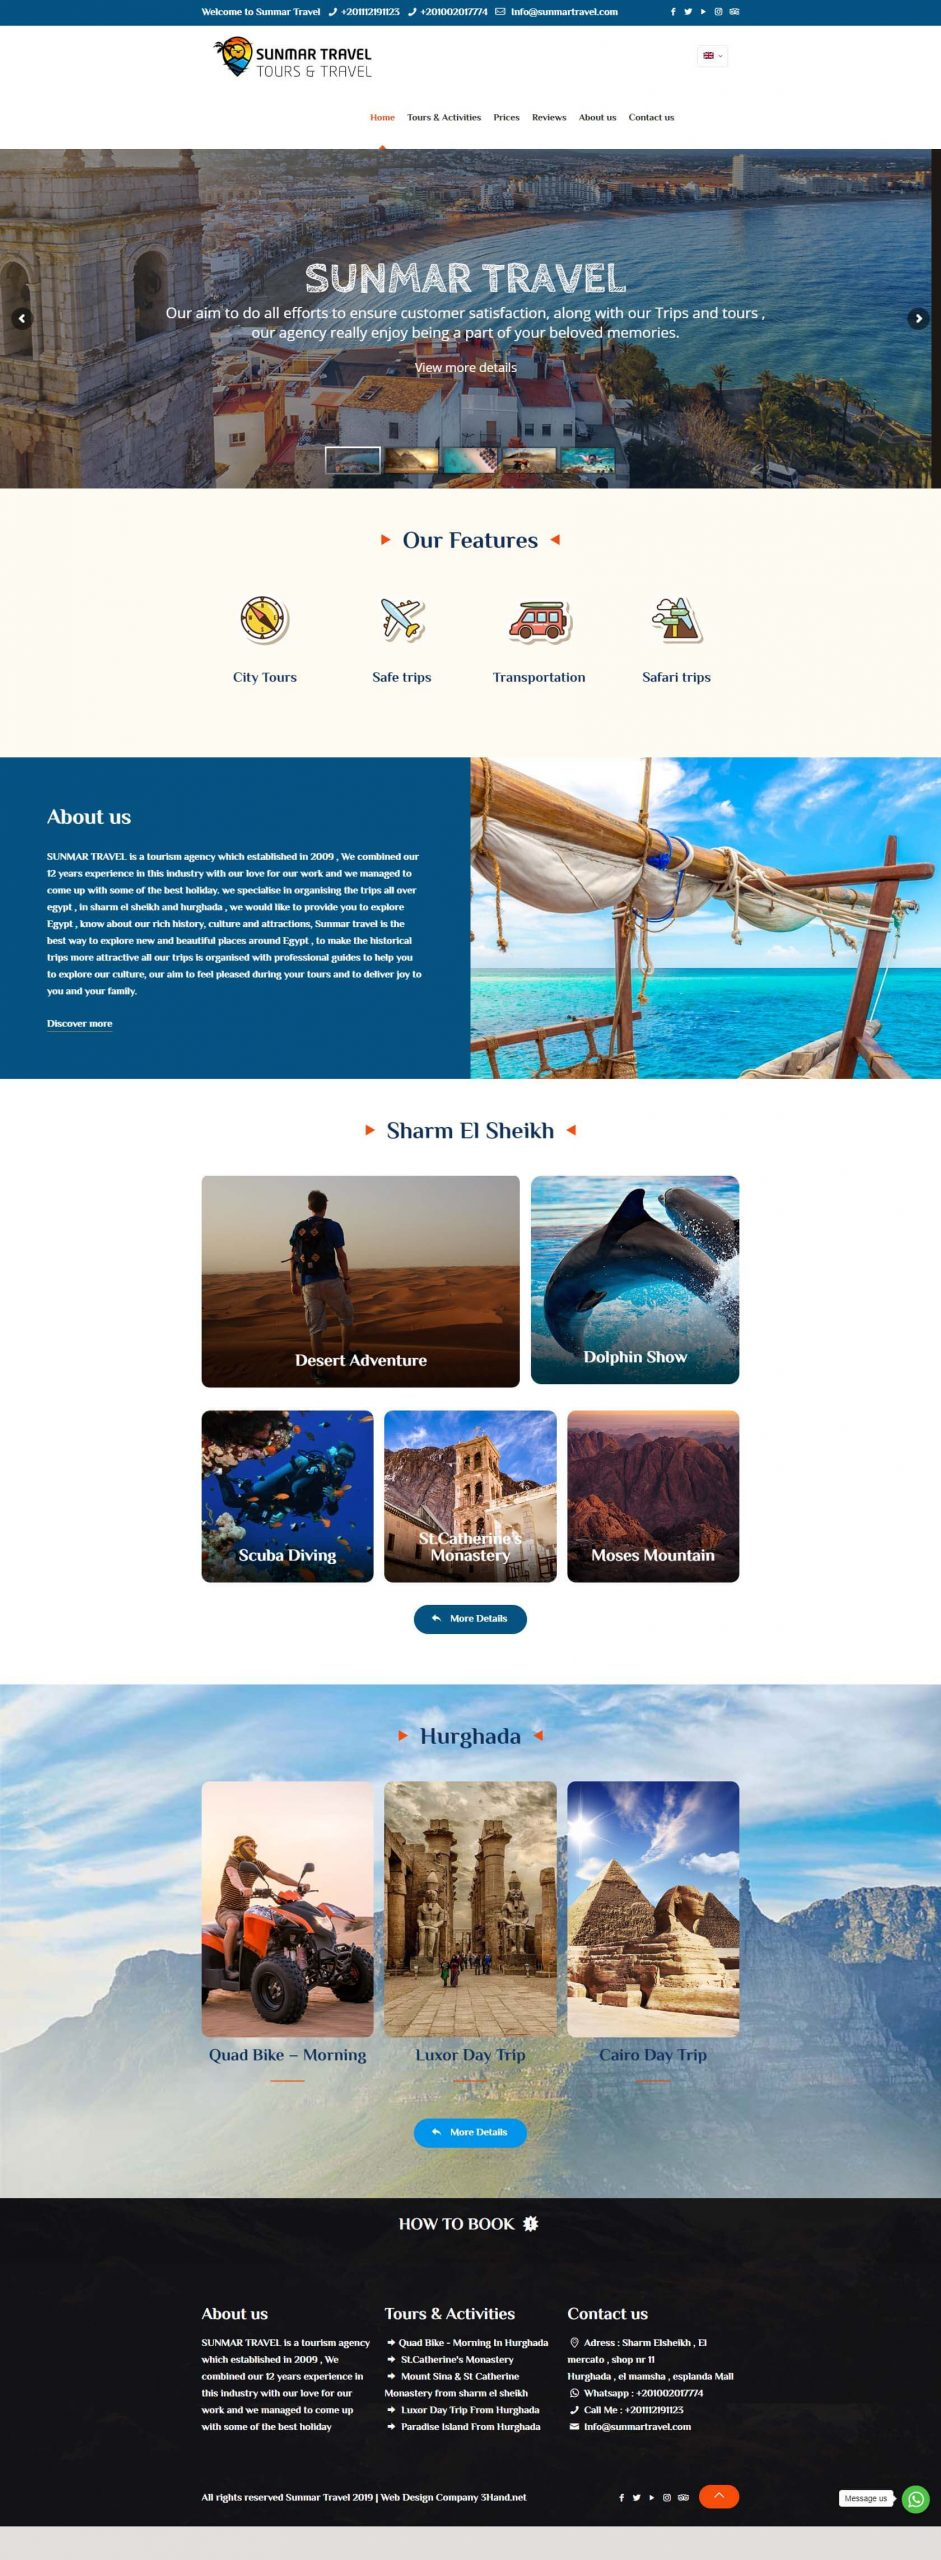 Excursions-in-Sharm-el-sheikh-I-Hurghada-Tours-I-Egypt-Tours-scaled